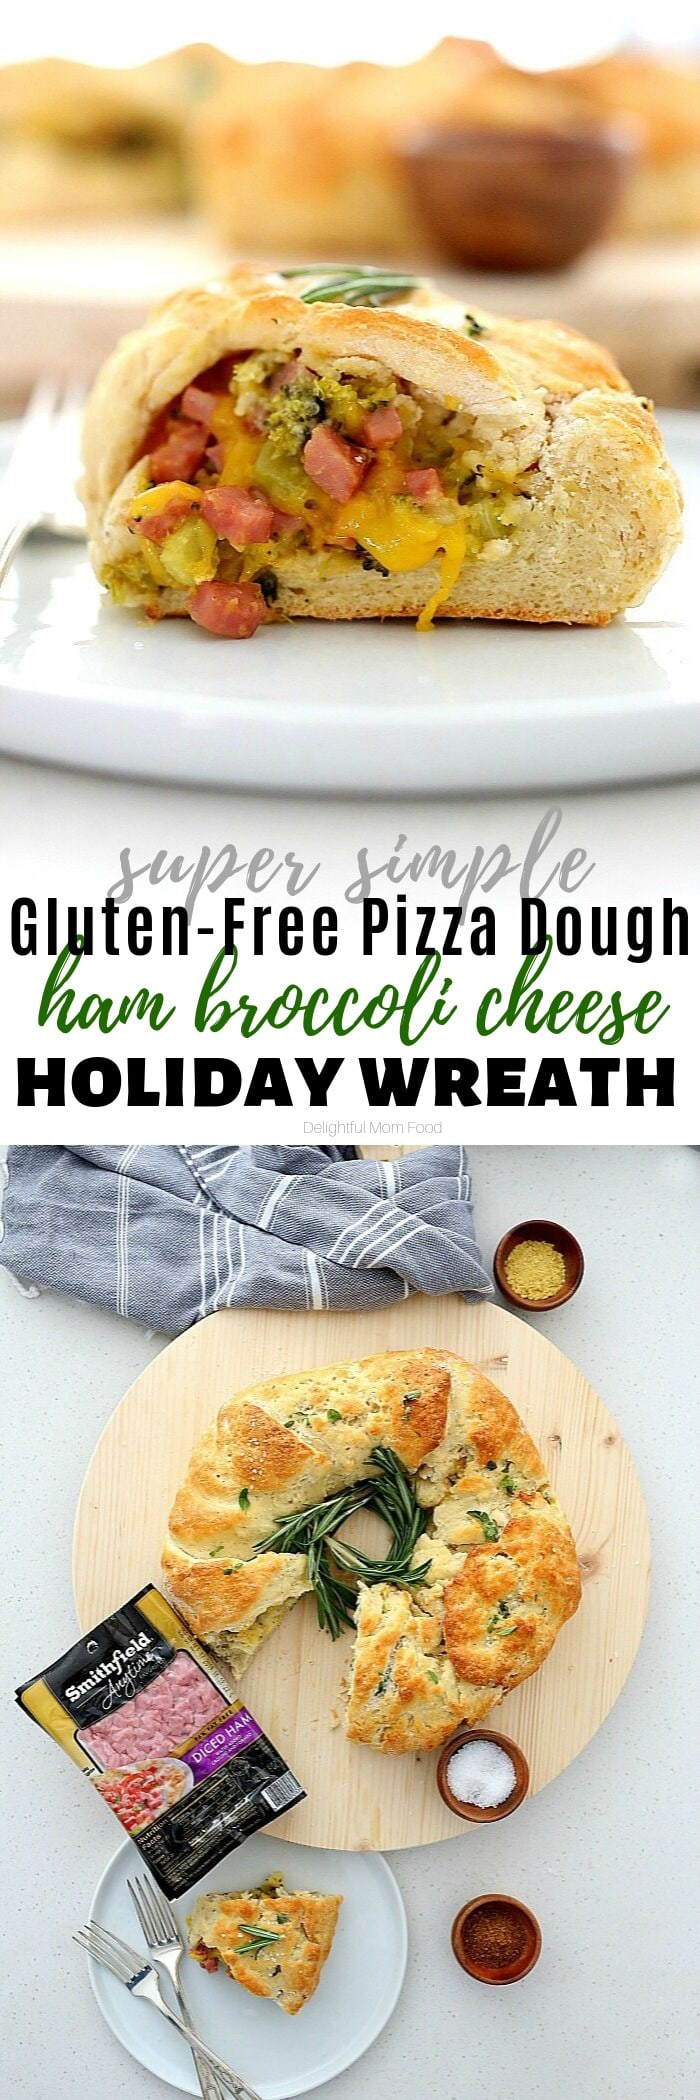 Cozy up this holiday season with this comforting gluten-free and dairy-free holiday wreath simply made with a creamy filling stuffed with diced ham, broccoli and cheese! You will be blown away how easy it is to make a Ham Broccoli Cheese Wreath, plus this one is dairy-free! #sponsored #glutenfree #holiday #Christmas #Thanksgiving #recipe #holidaywreath #ham #hamcheesebroccoli | Delightful Mom Food